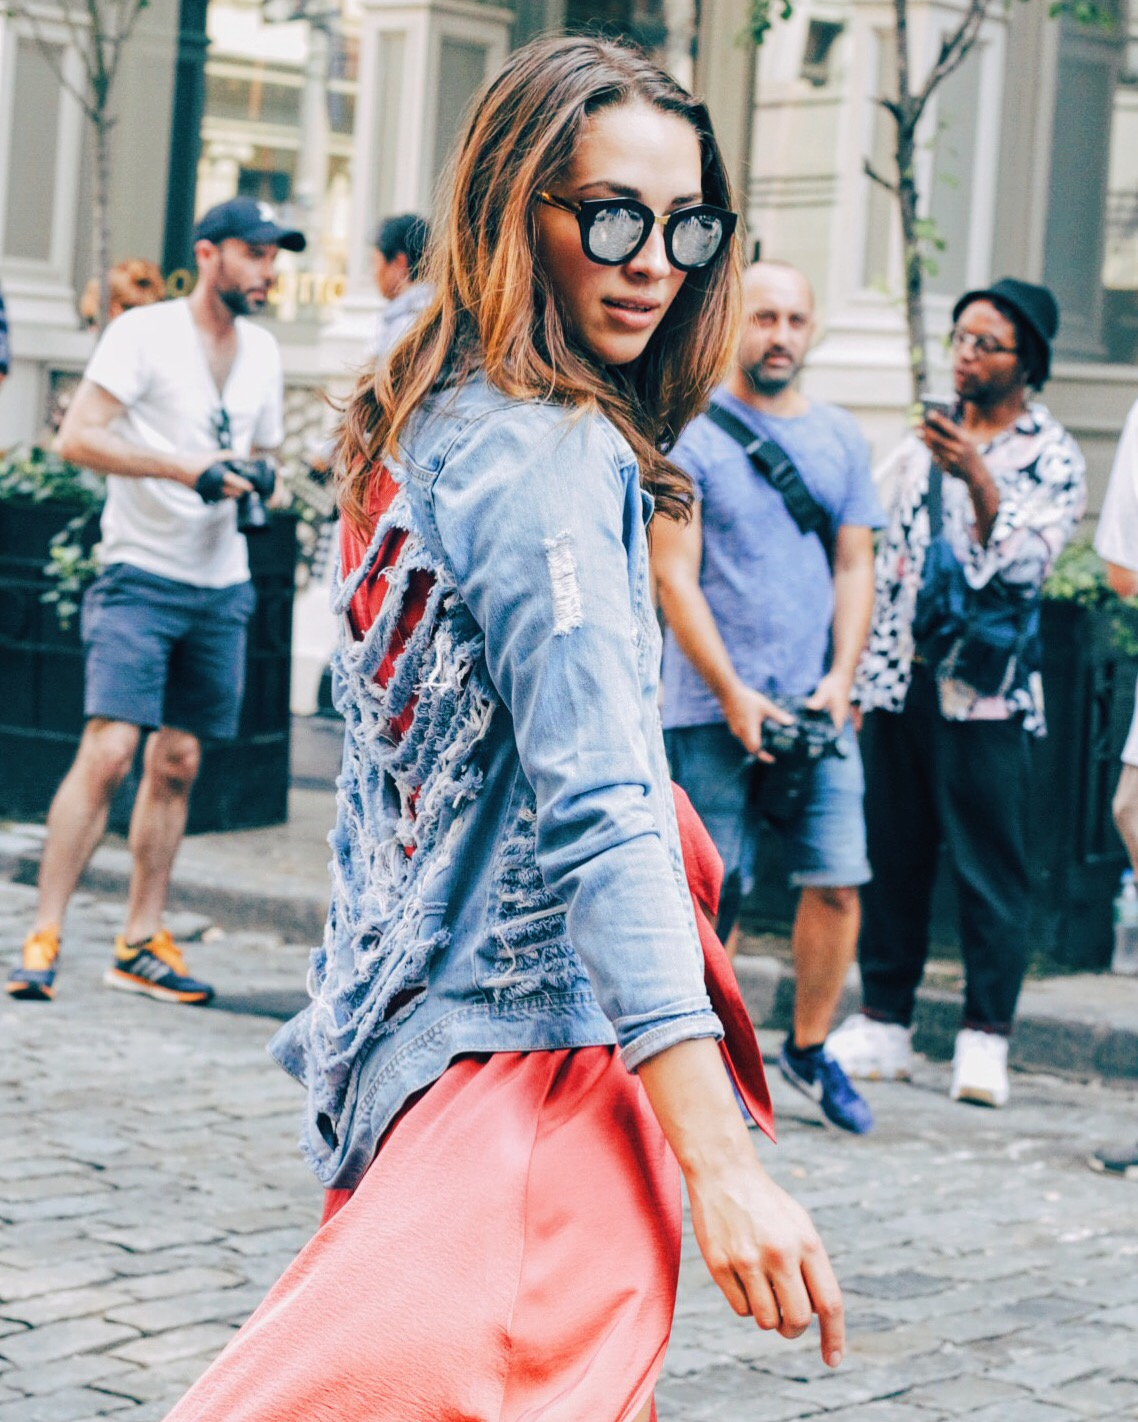 Xenia Mz streetstyle at NYFW Rebecca Minkoff SS17 show in Soho. Photographed by Juan Ordonez